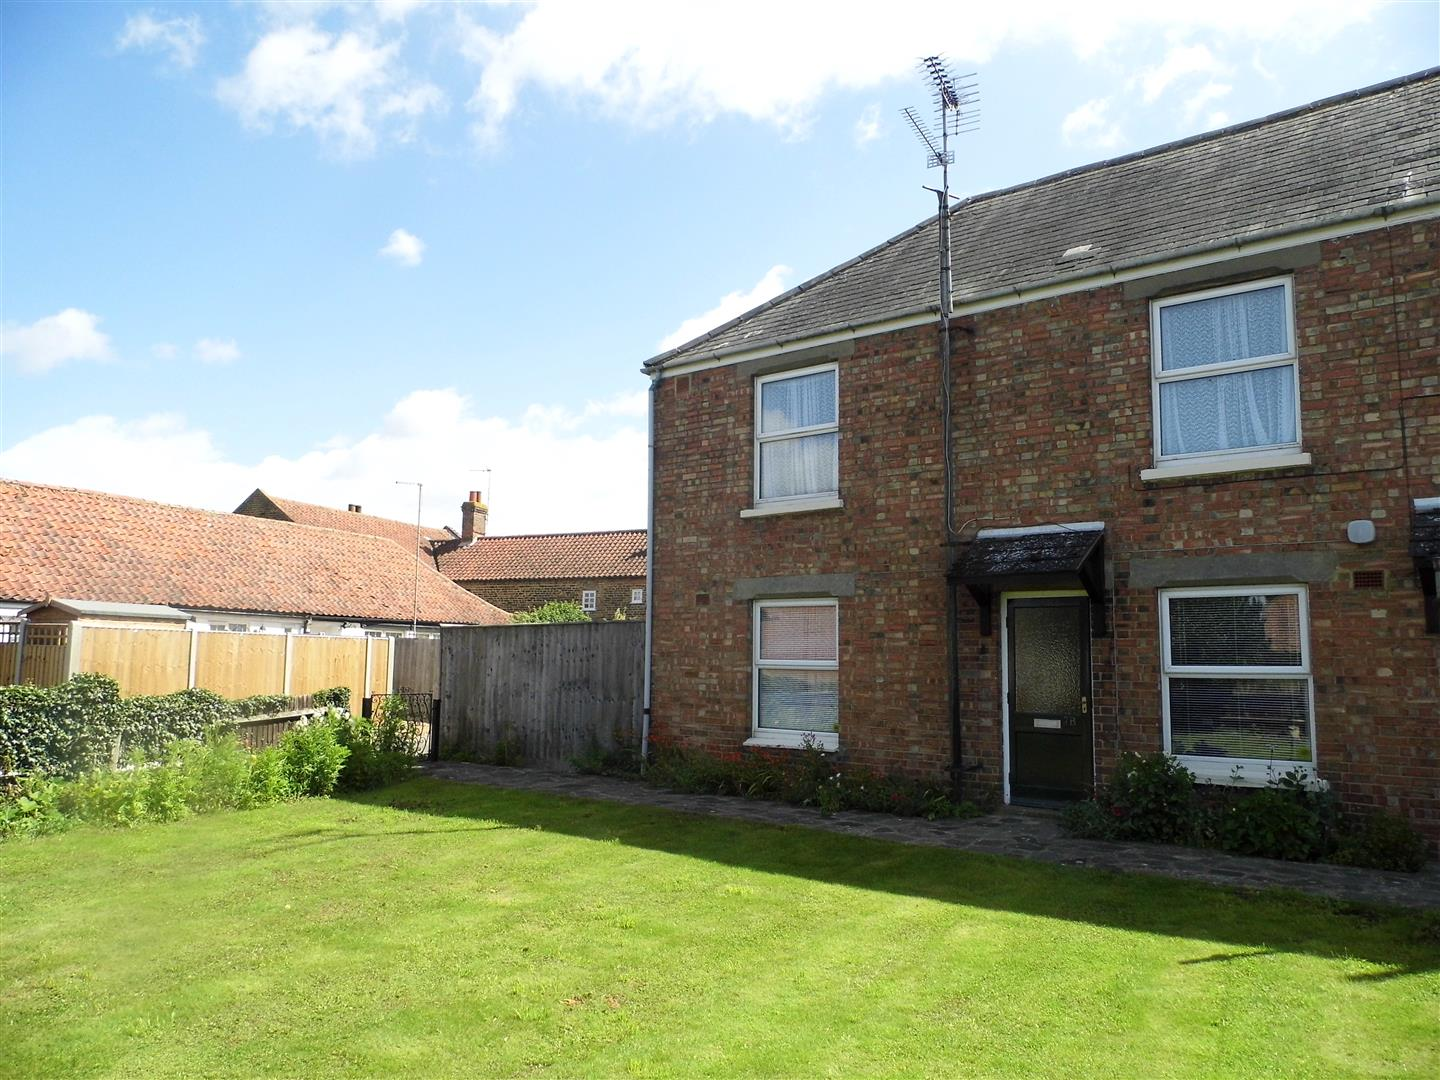 1 bed flat to rent in King's Lynn, PE34 4NE, PE34